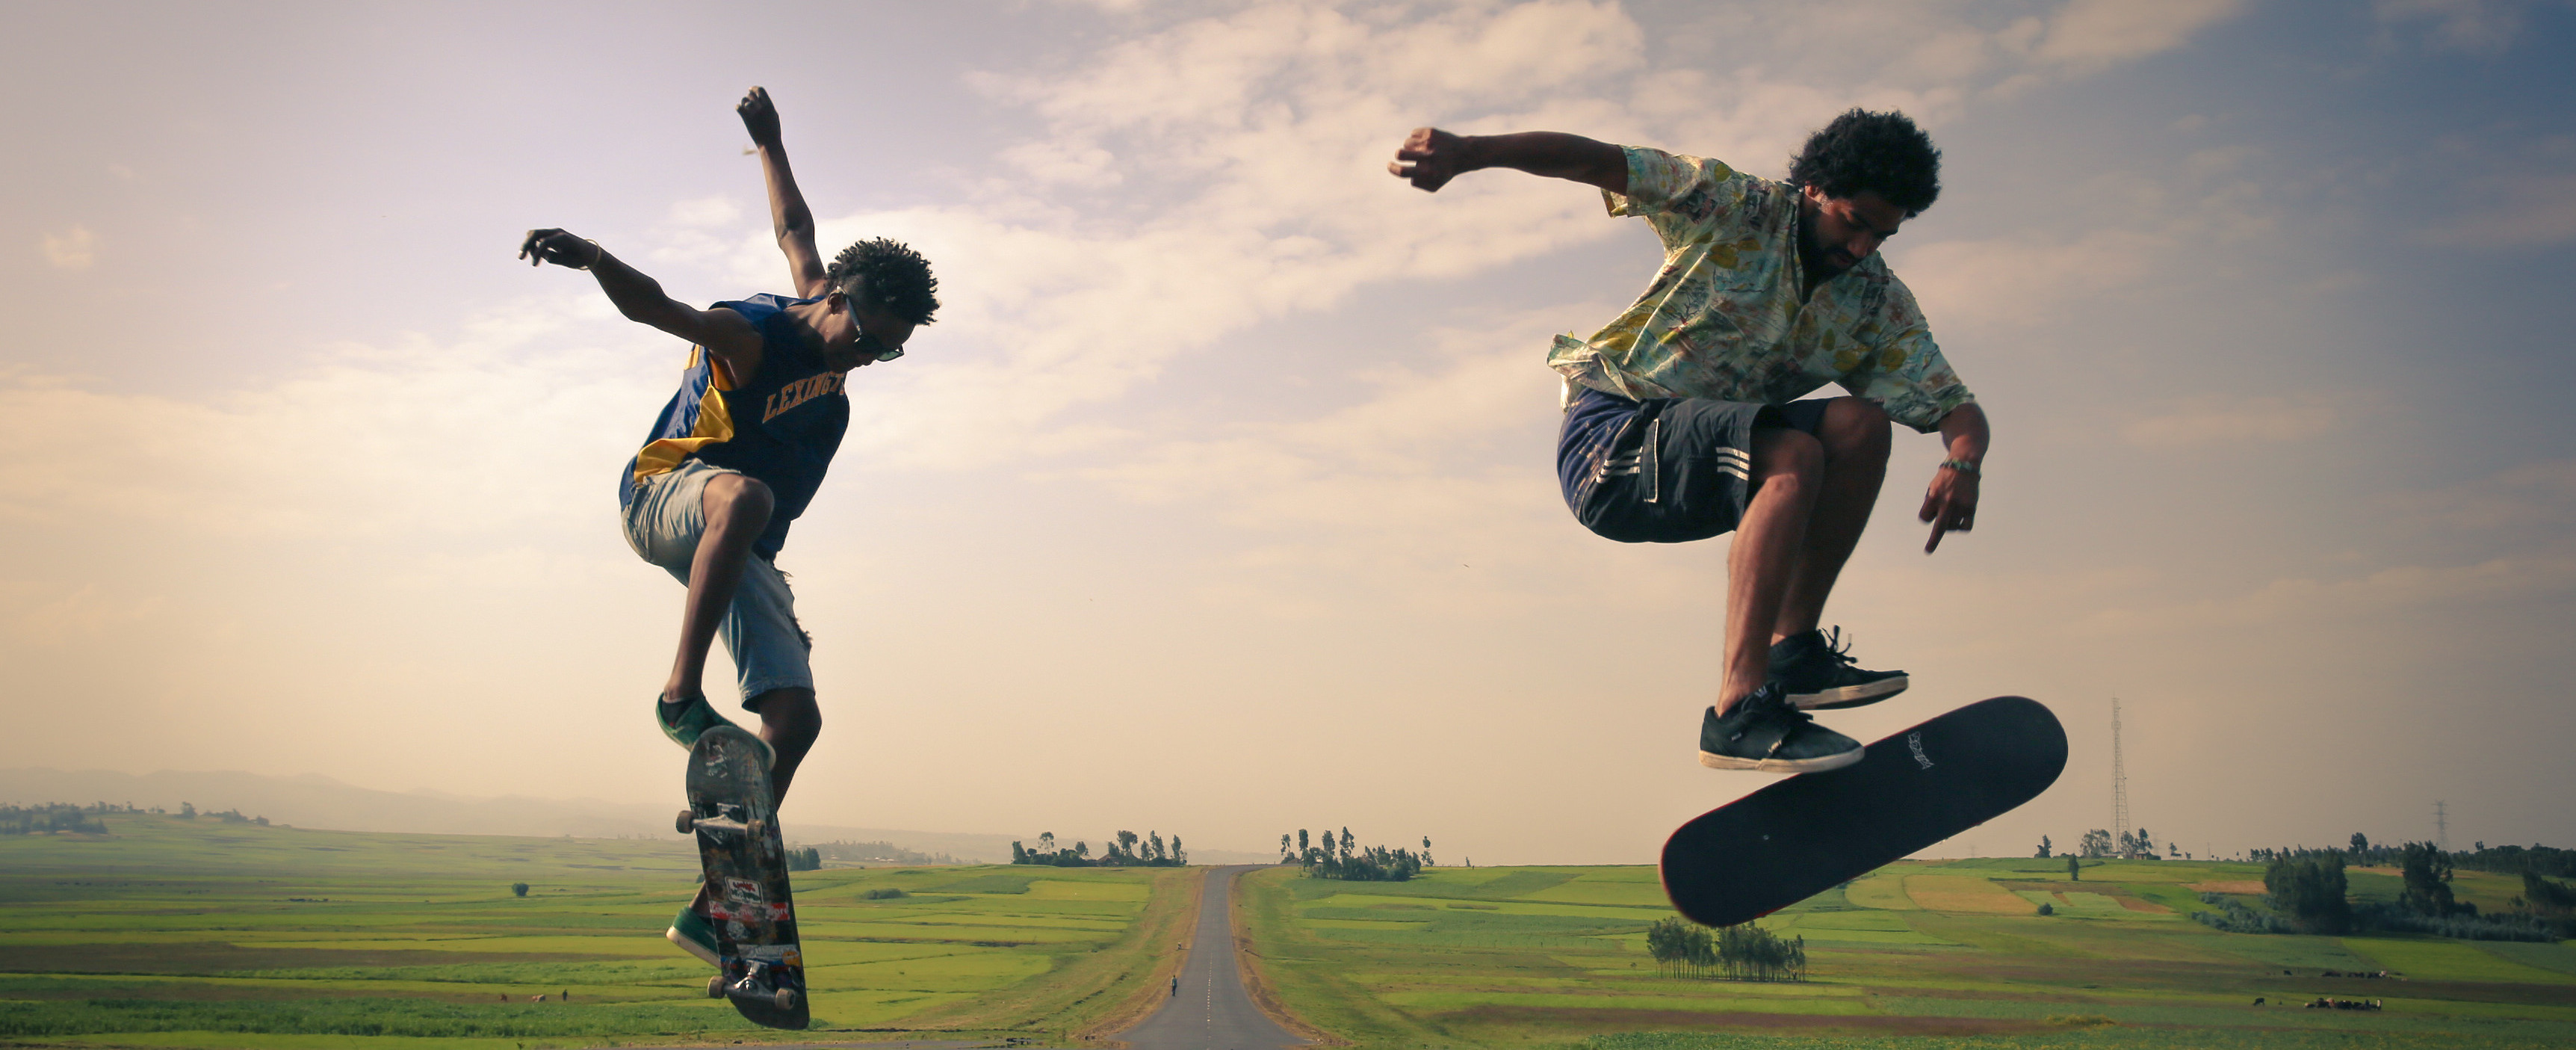 Image courtesy of Ethiopia Skate + Sean Stromsoe, the Colored Experience